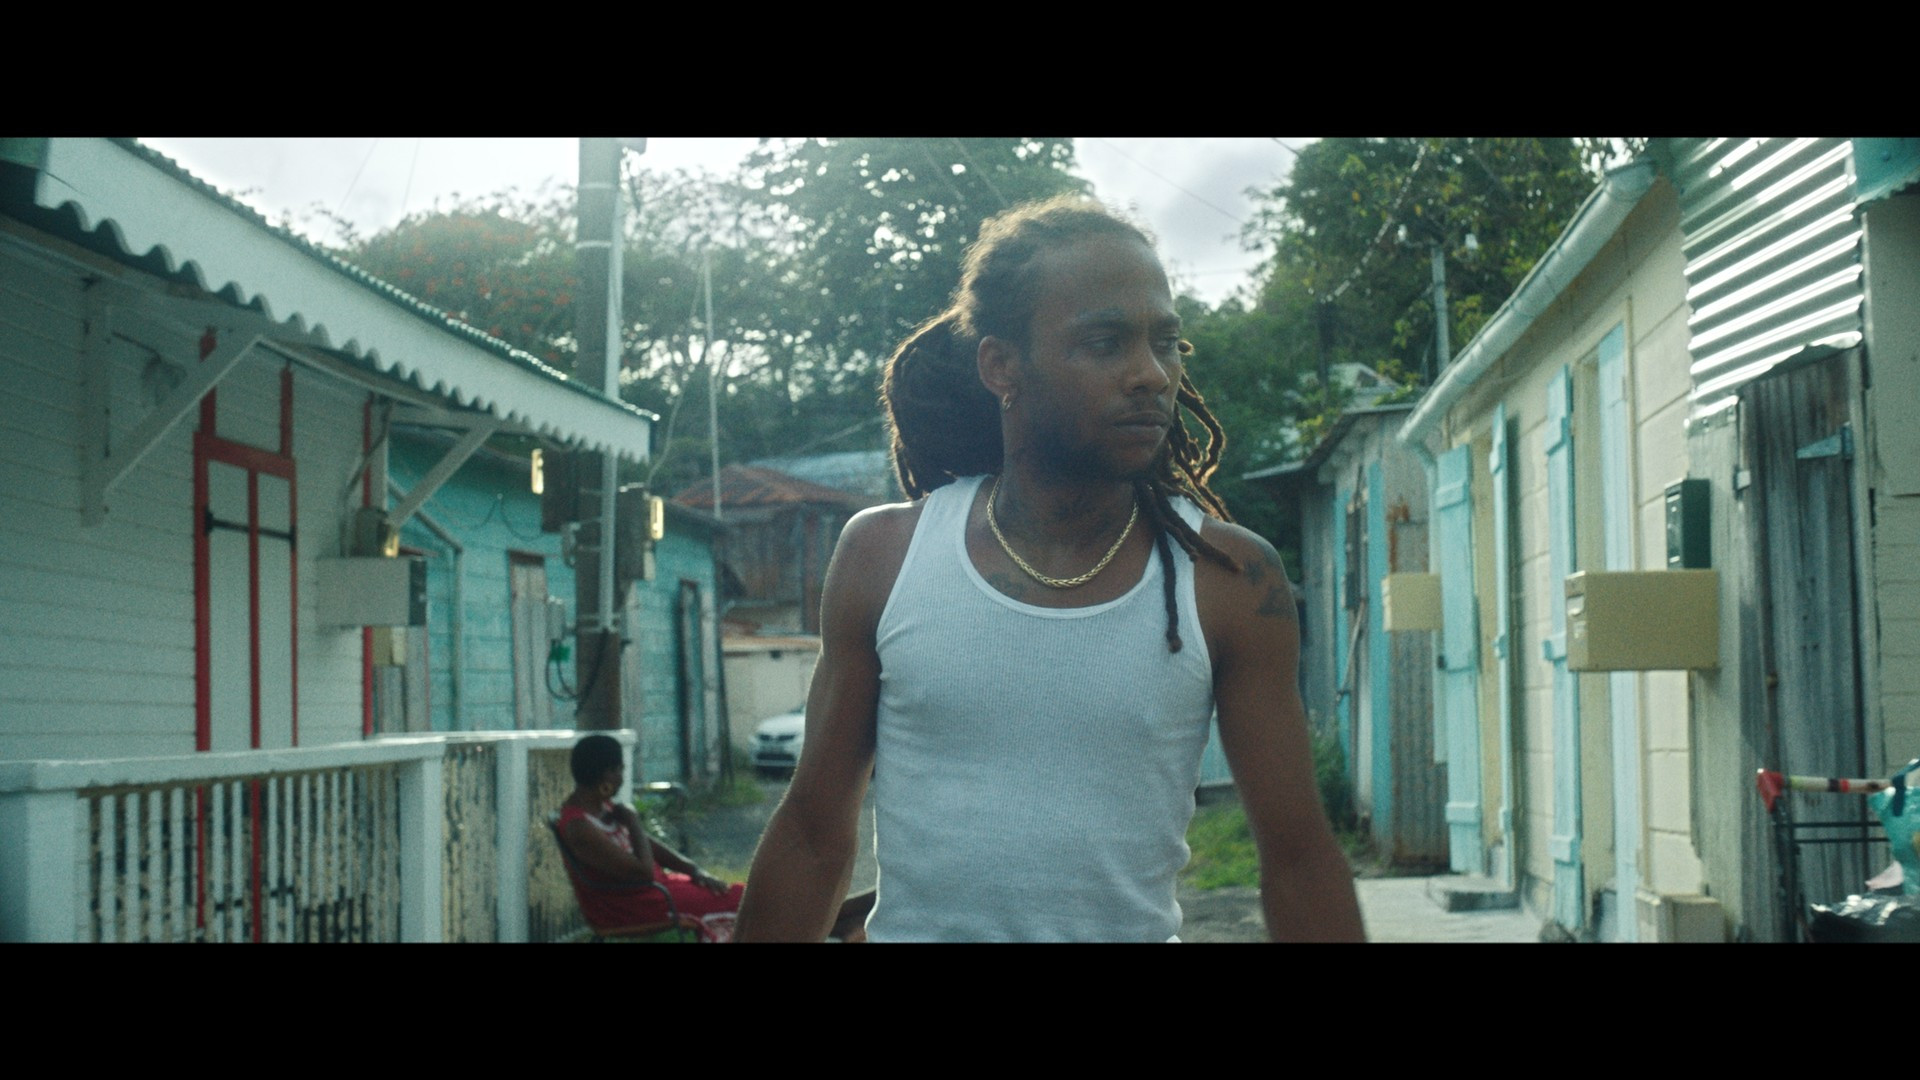 Your Kid - Dir. Nelson Foix (Guadeloupe)